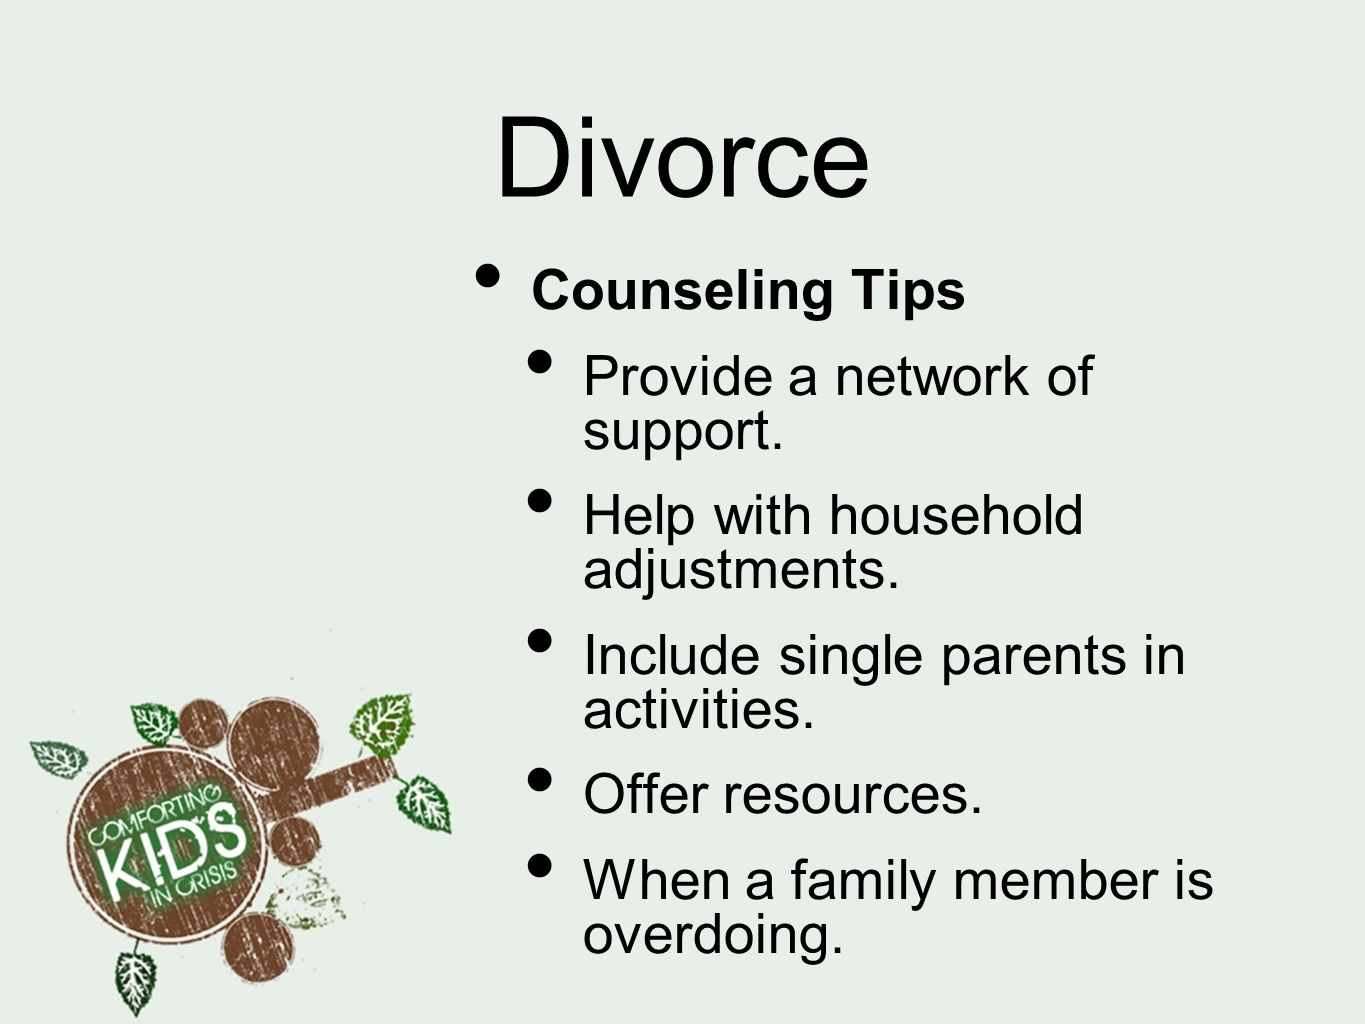 Divorce Counseling Tips Provide a network of support.